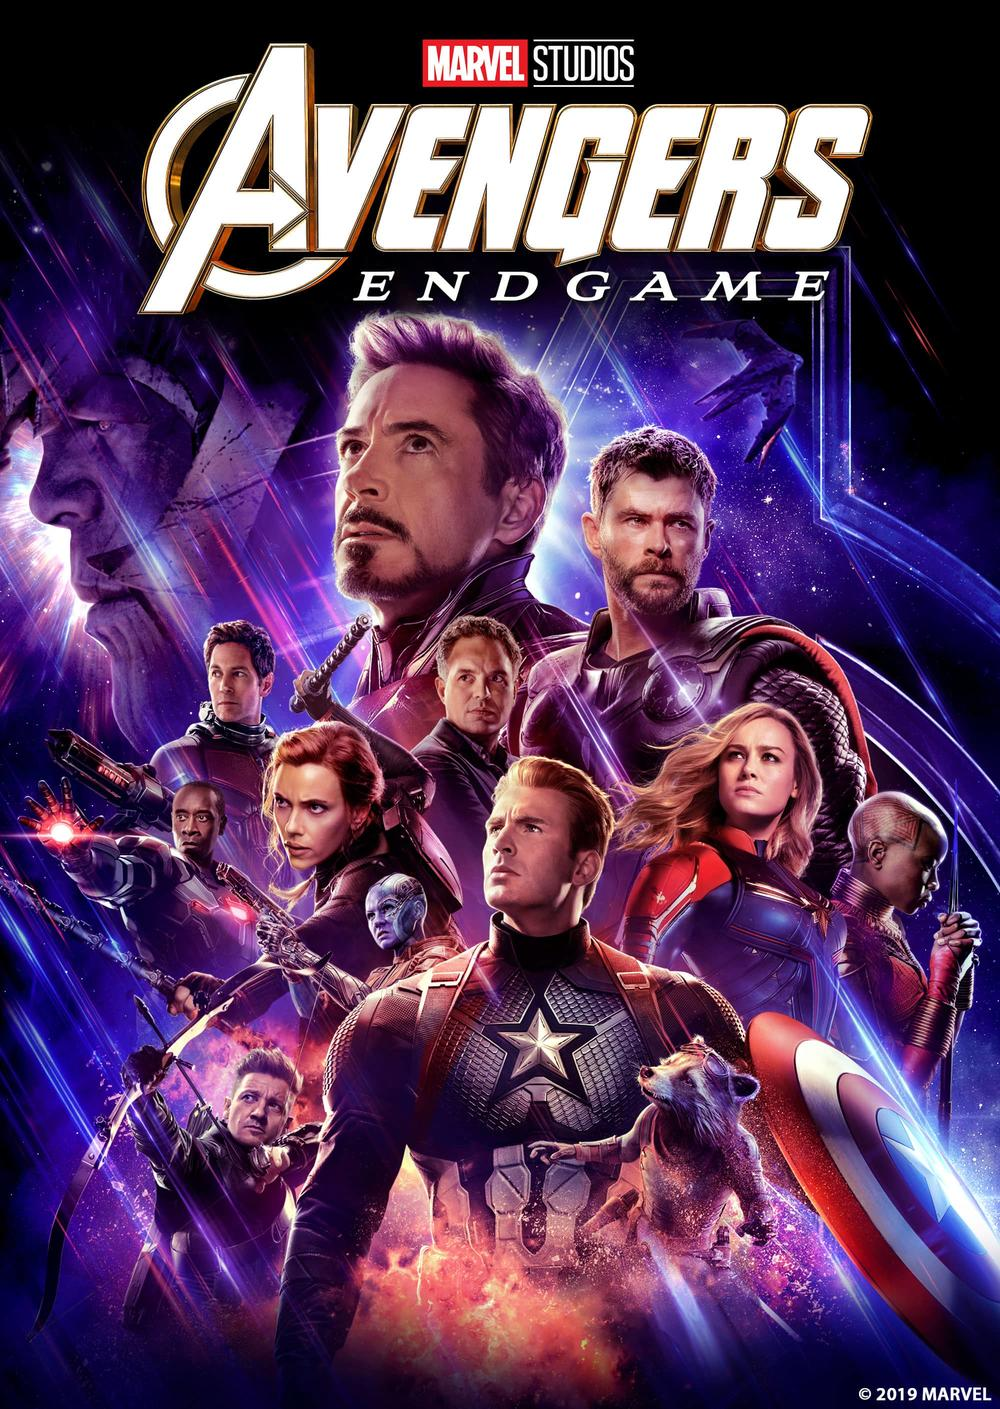 e8314b60c746c How to Watch 'Avengers: Endgame' Online in HD and 4K Ultra HD Now ...